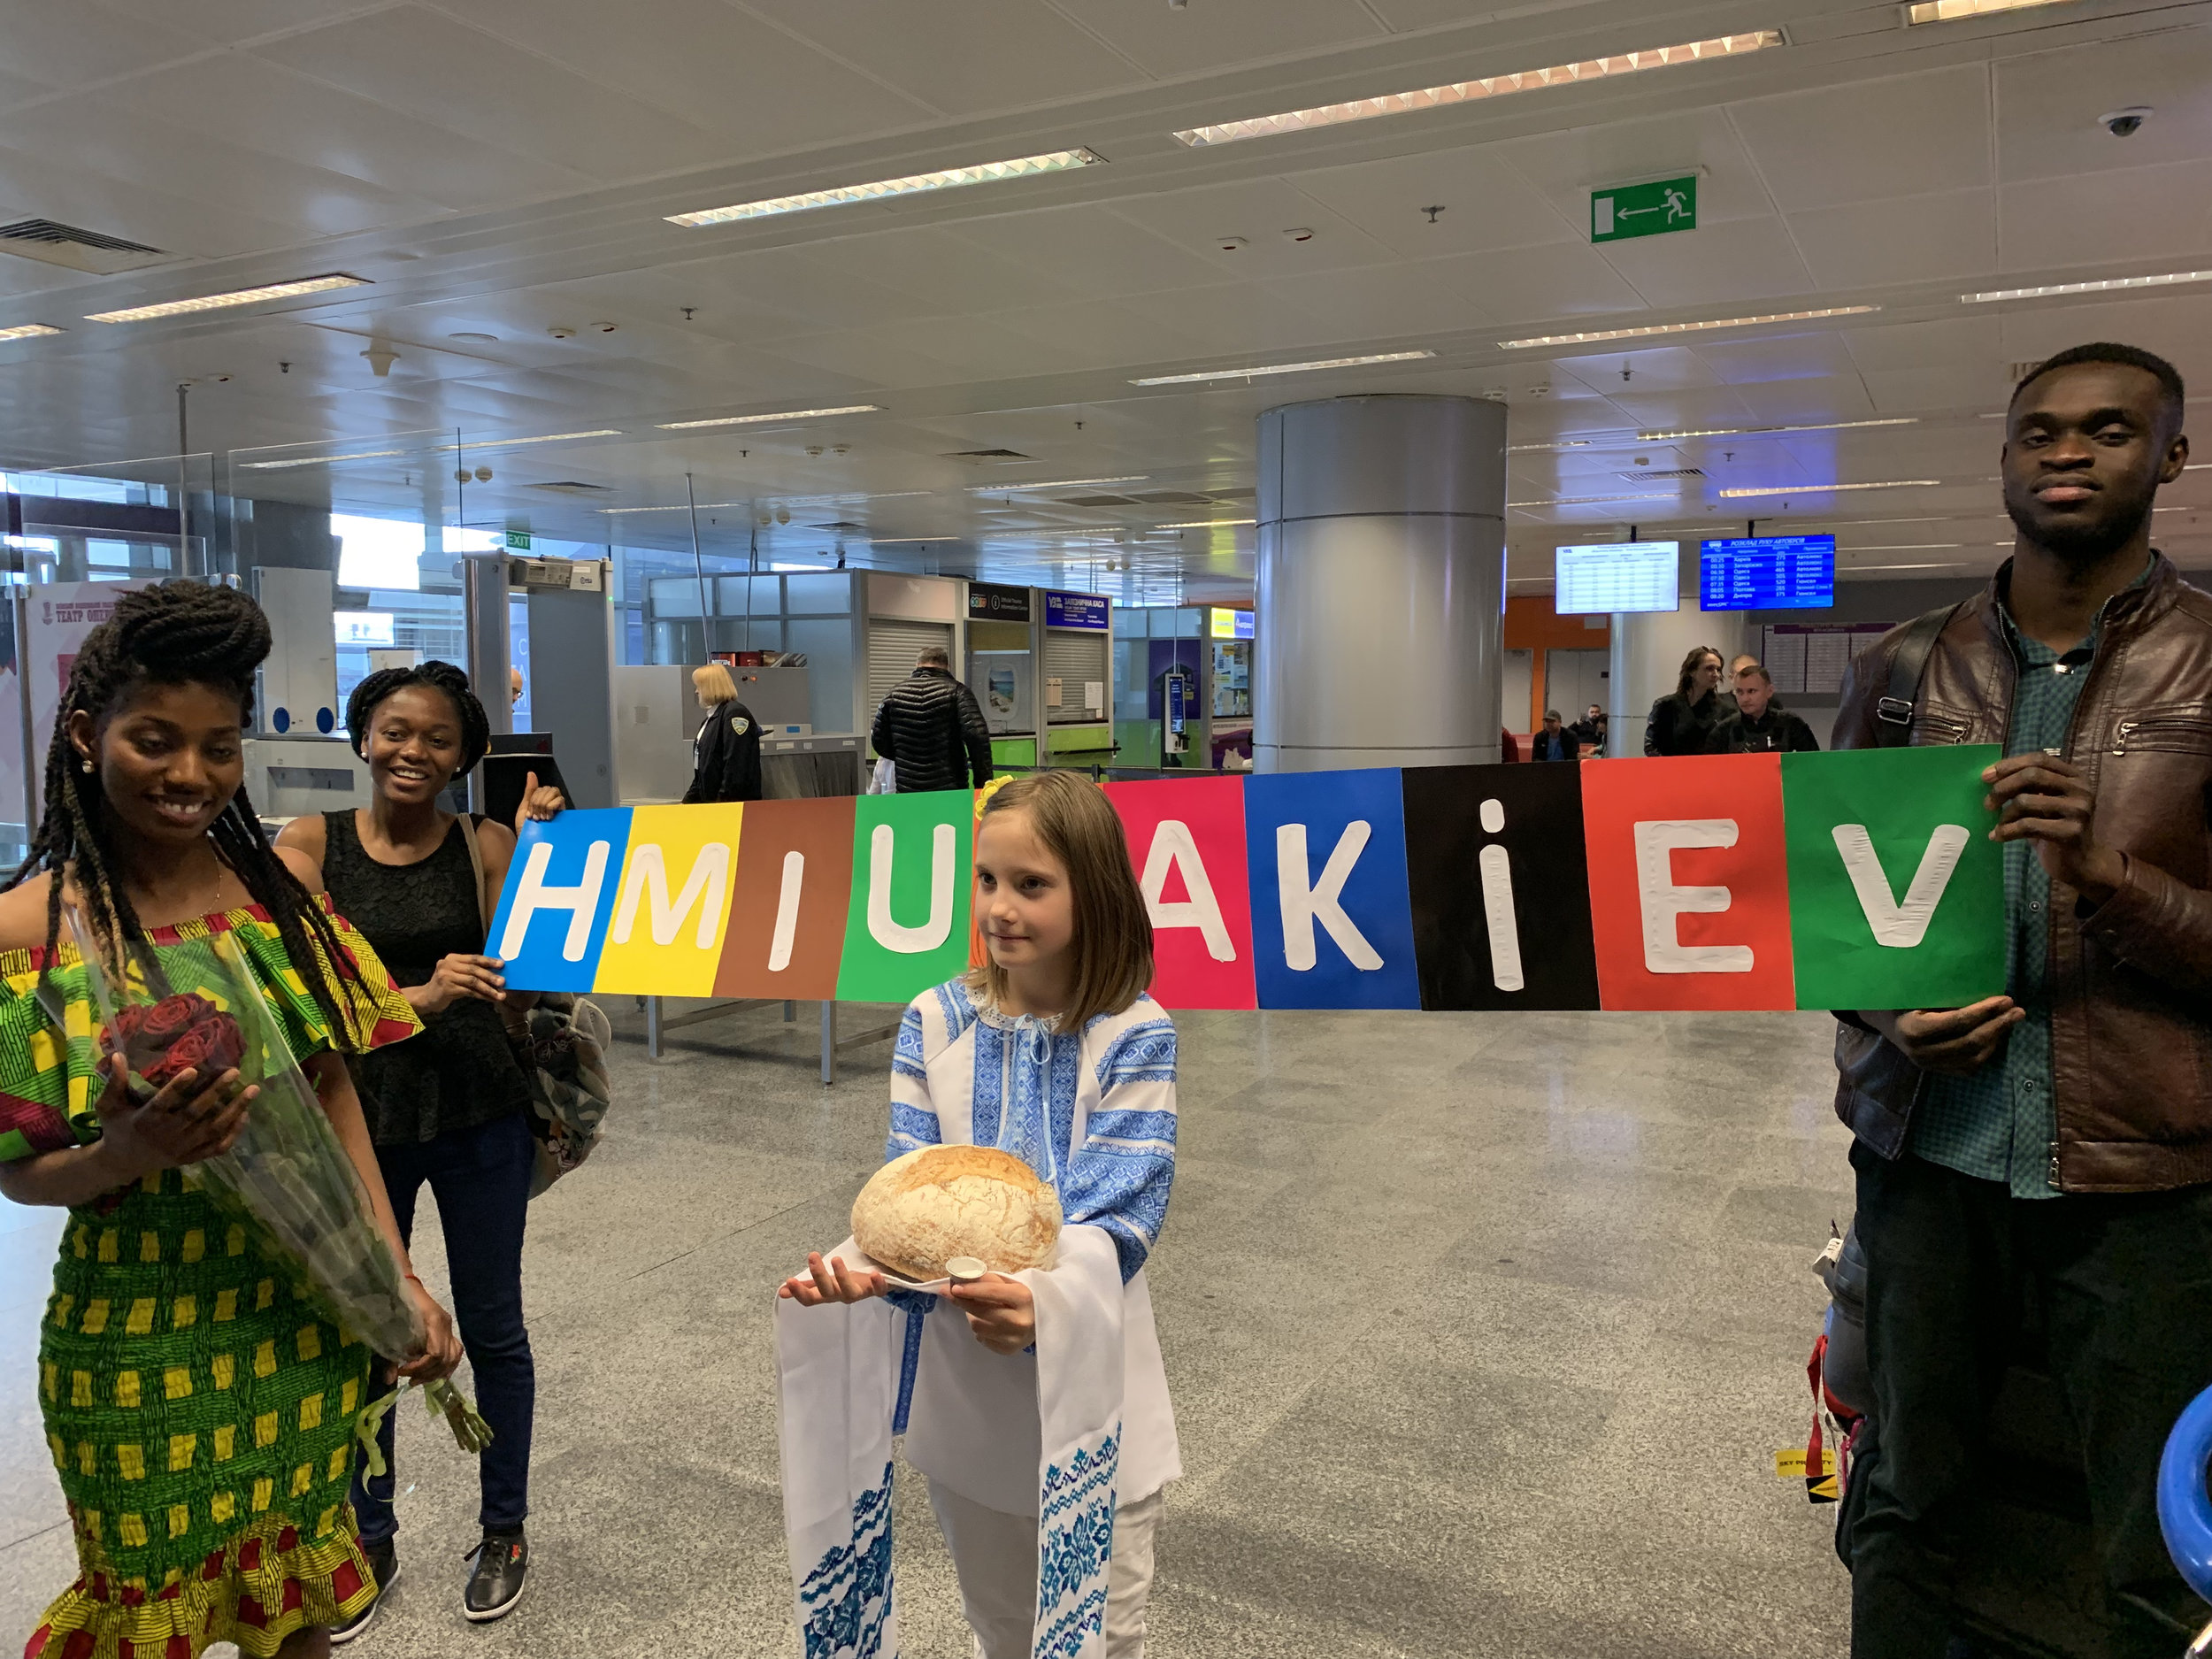 Our first welcome at the airport in Kiev from Help Motherland International, Ukraine.